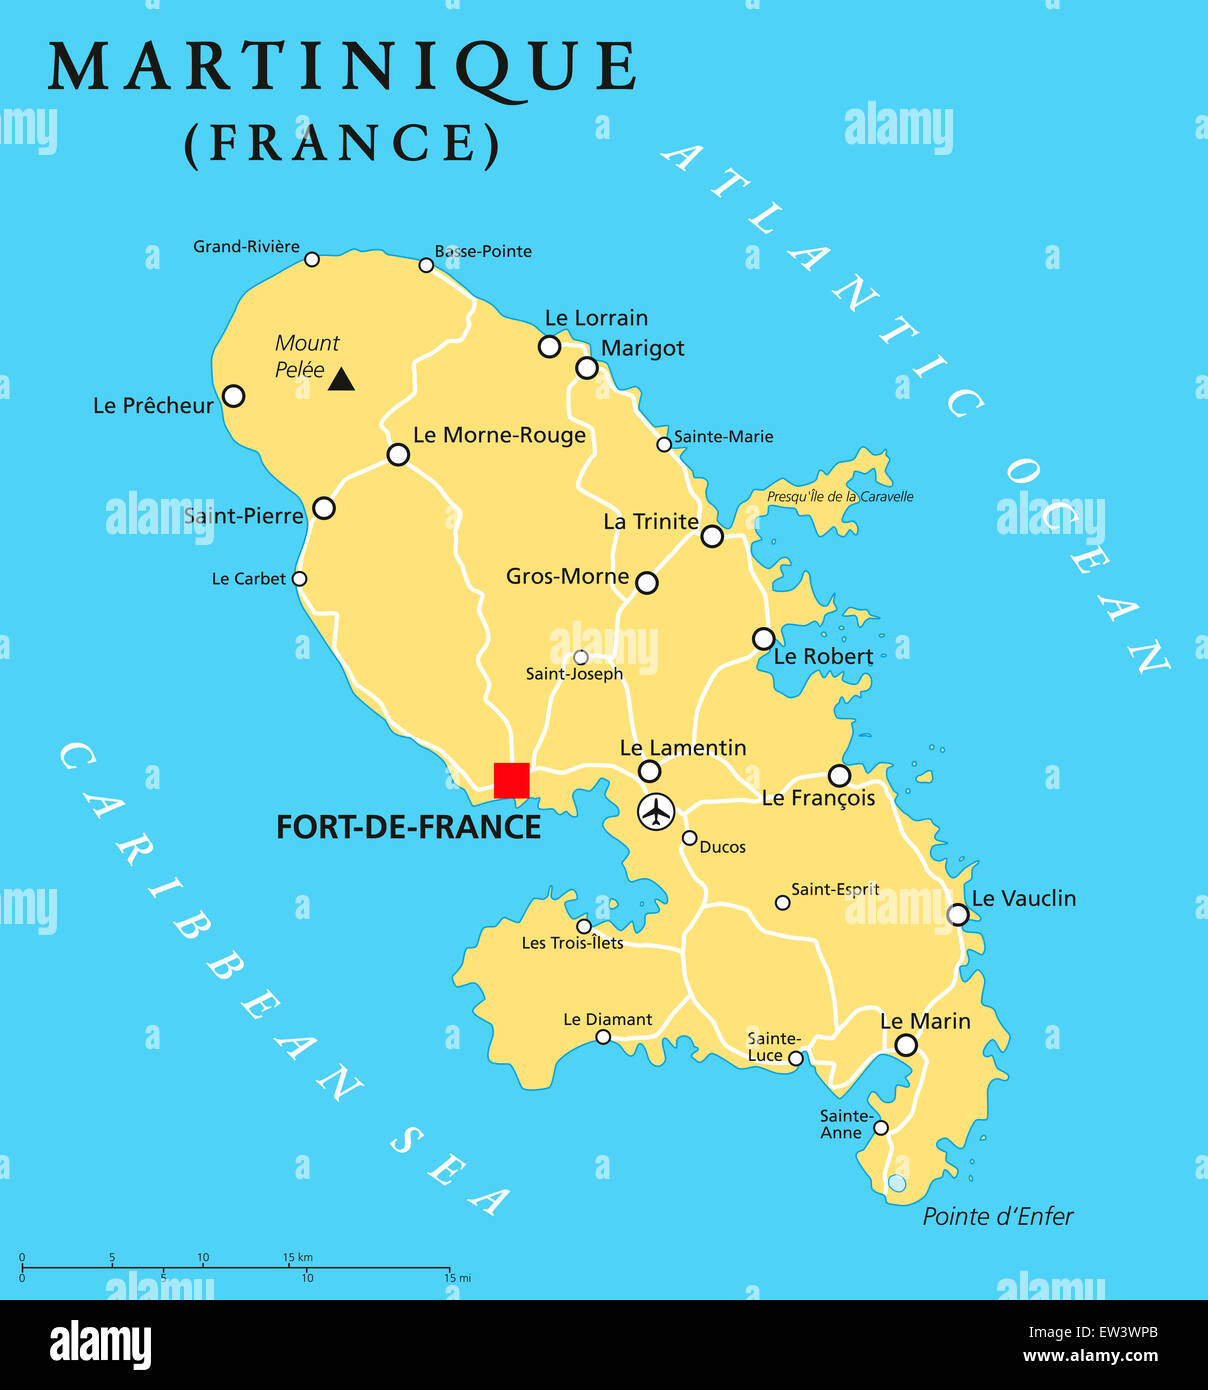 martinique political map with capital fort de france and important stock photo royalty free. Black Bedroom Furniture Sets. Home Design Ideas